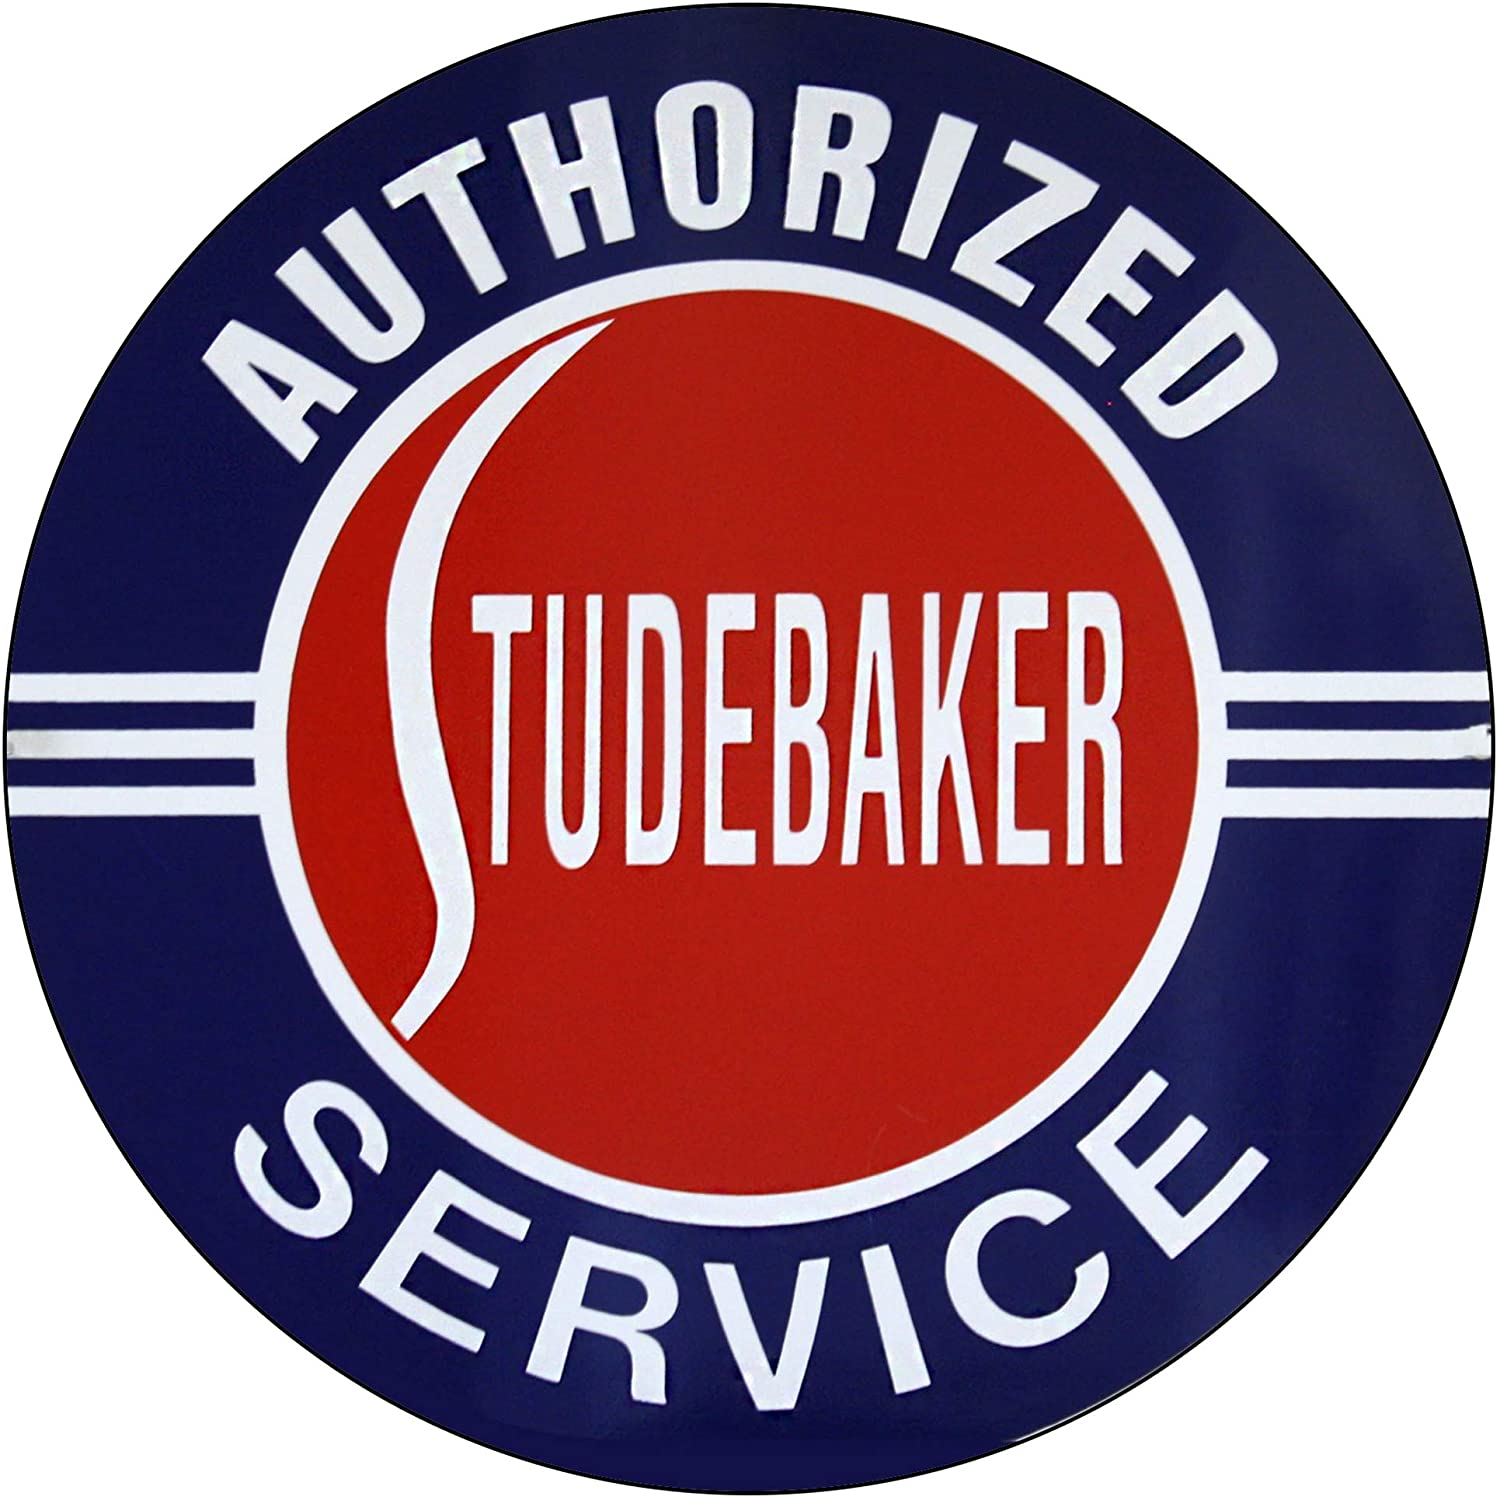 Vintage Gas Sign Reproduction Vintage Metal Signs Round Metal Tin Sign for Garage and Home 8 Inch Diameter – Authorized Studebaker Service